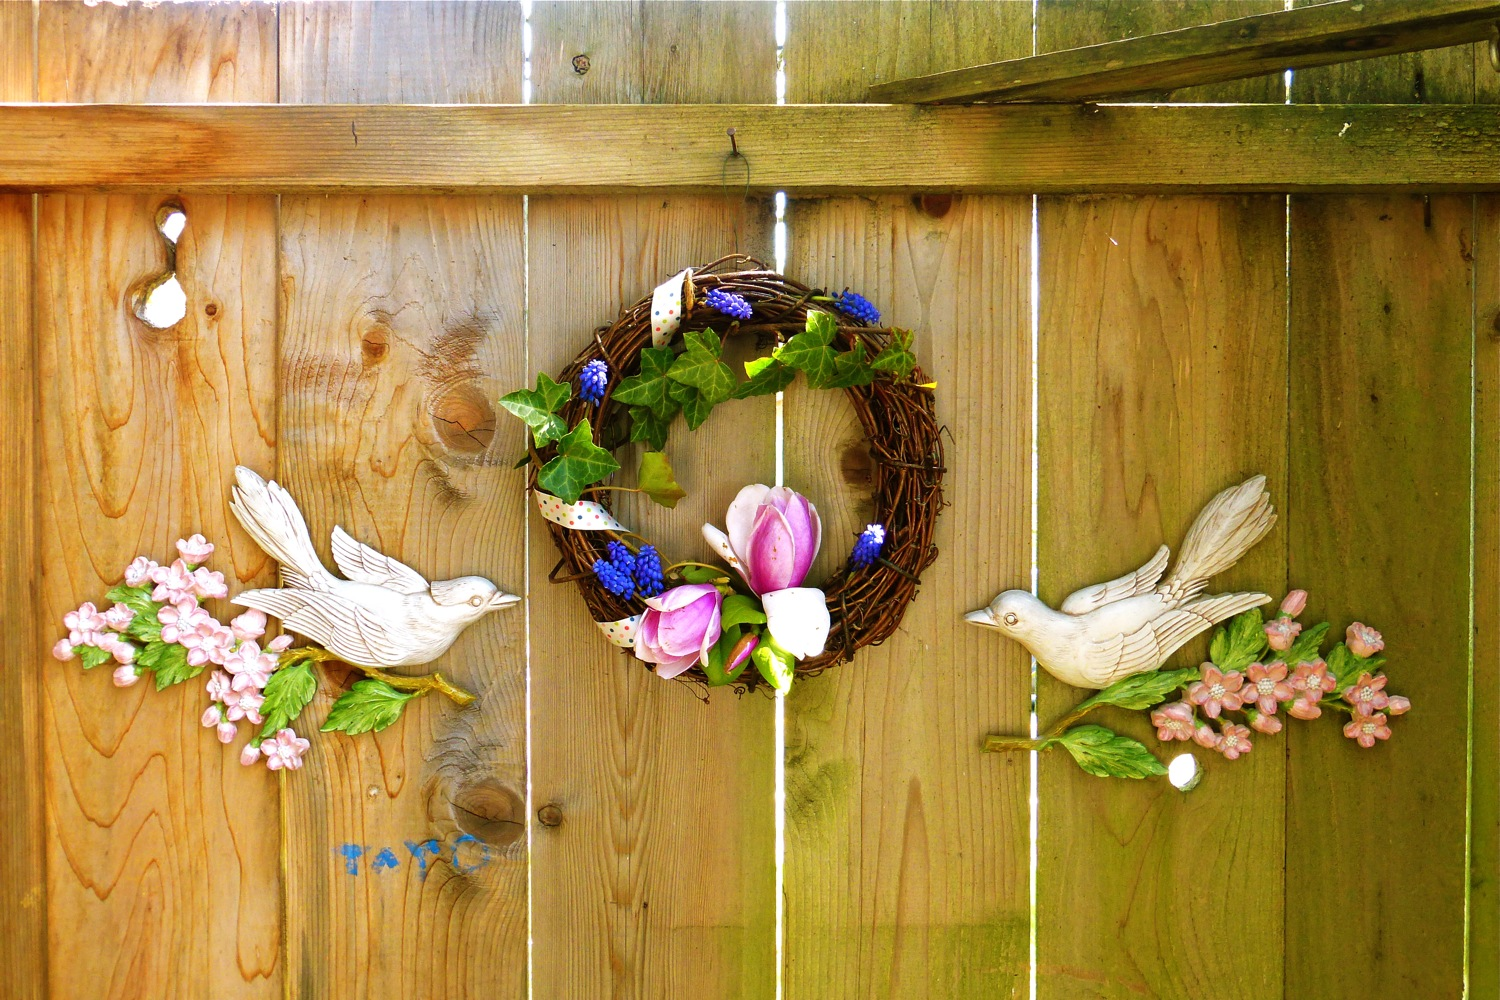 floral wreath, spring floral wreath, magnolia wreath, ivy wreath, muscari wreath, grape hyacinth wreath, DIY wreath, do it yourself spring wreath, foraged wreath, spring foraged wreath, DIY: Foraged Spring Wreath, make a spring floral wreath, ideas for spring wreaths